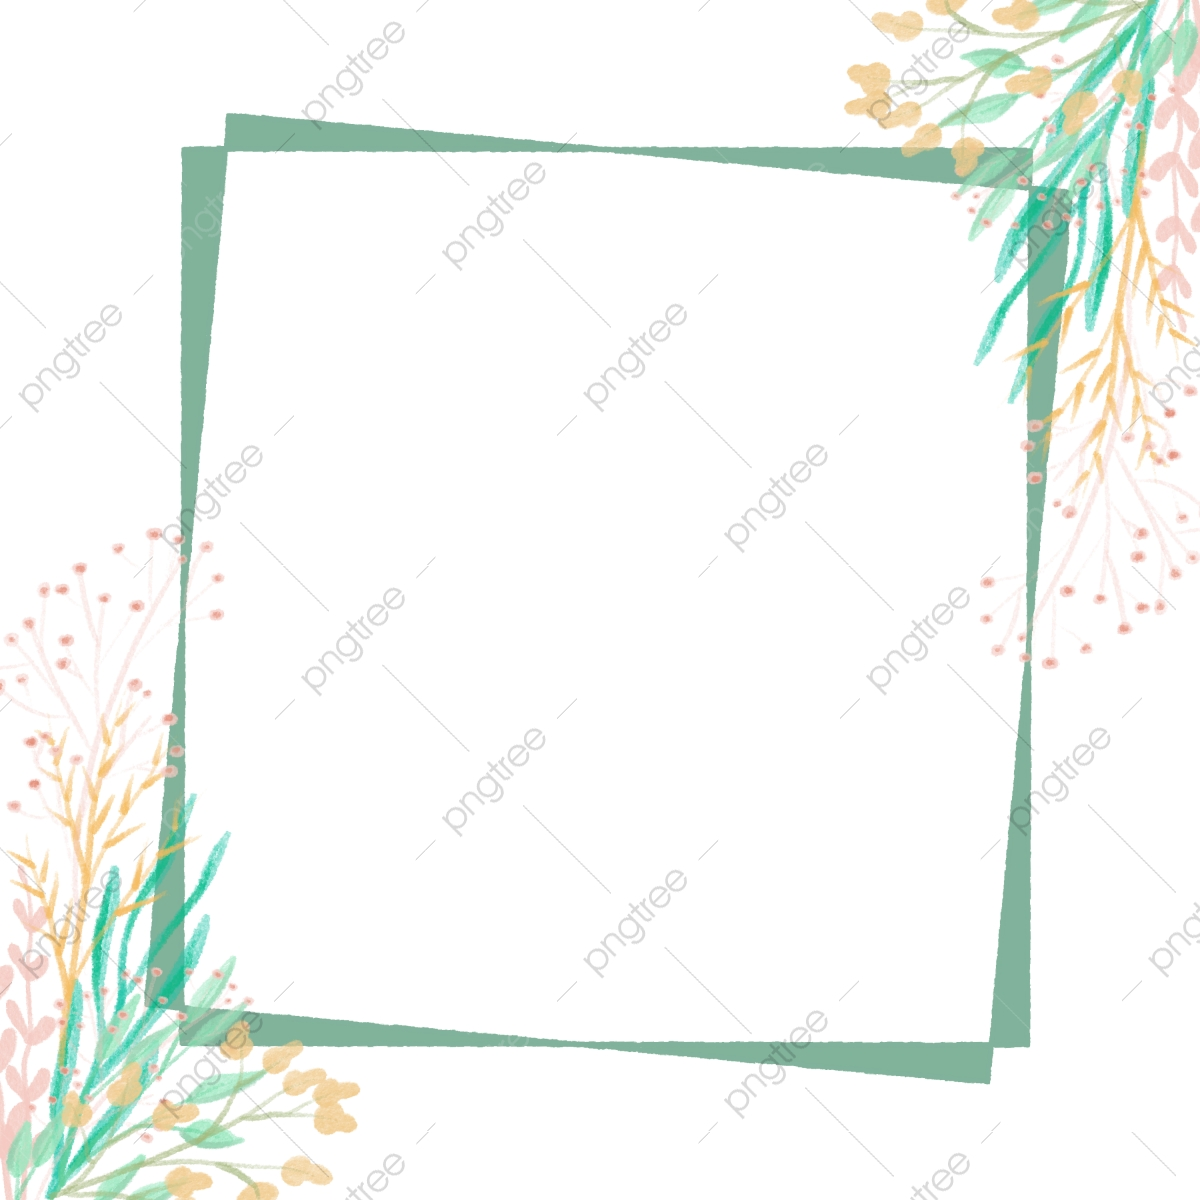 bingkai bunga elegan untuk dekorasi kartu ucapan bingkai bunga bunga daun daun png transparan gambar clipart dan file psd untuk unduh gratis https id pngtree com freepng elegant floral frame for decorating greeting cardb 5435769 html